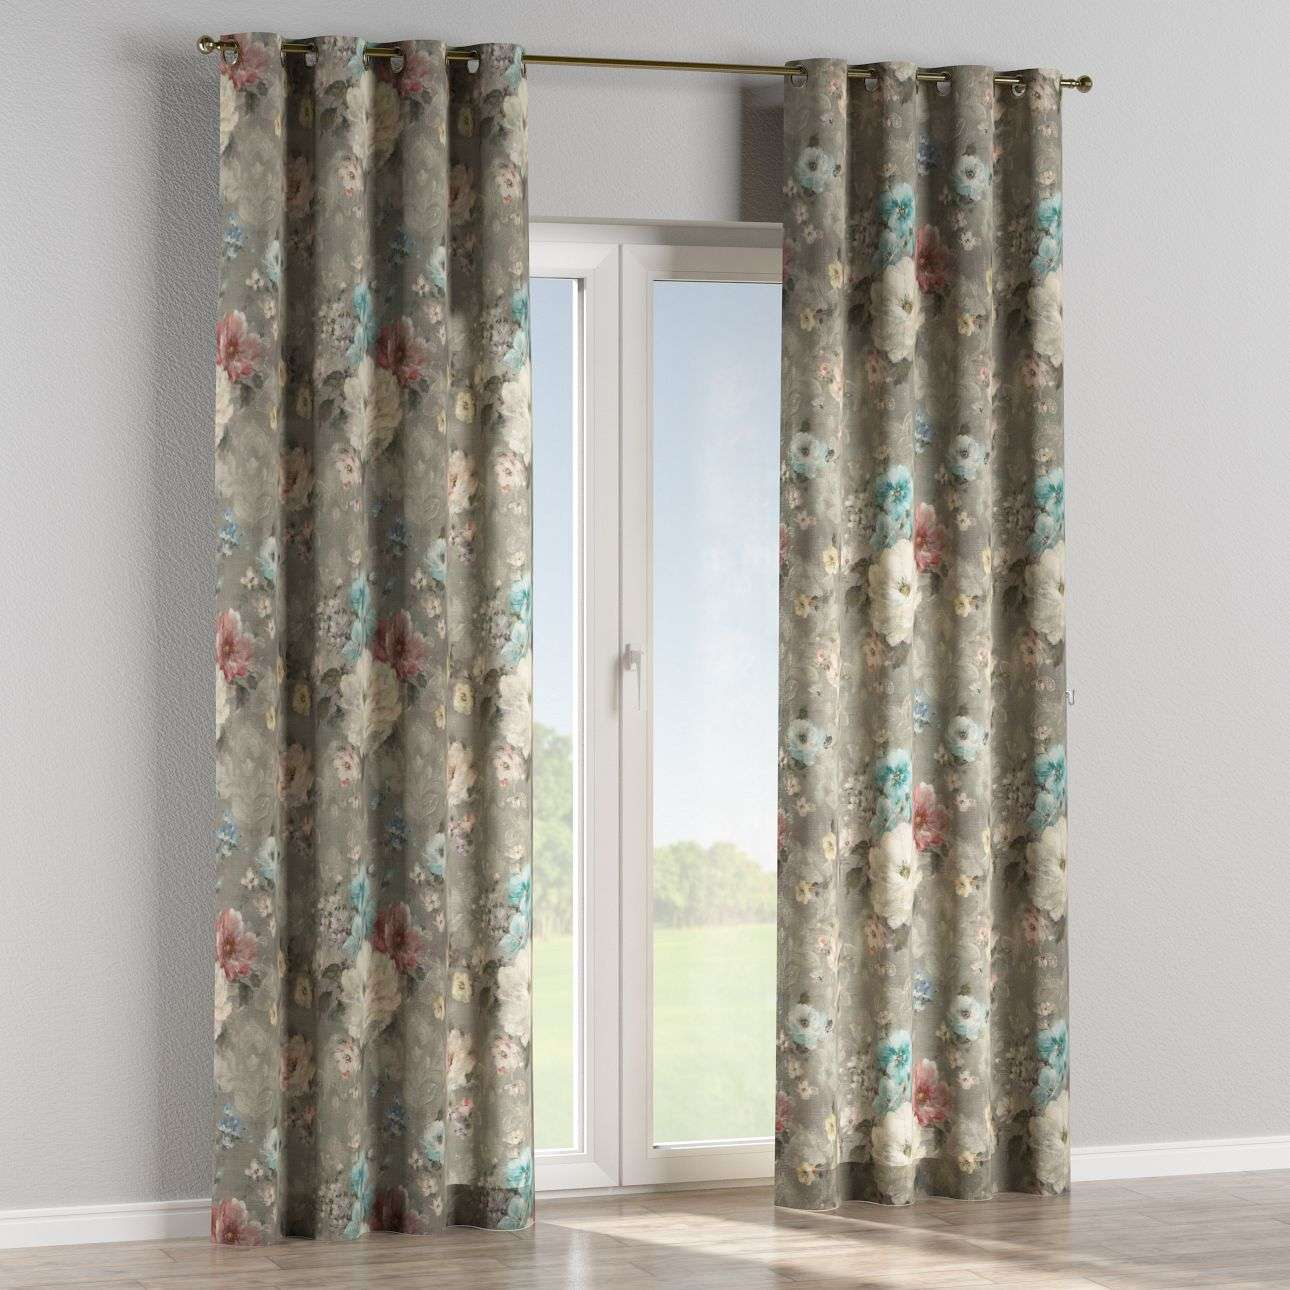 Eyelet curtains 130 x 260 cm (51 x 102 inch) in collection Monet, fabric: 137-81